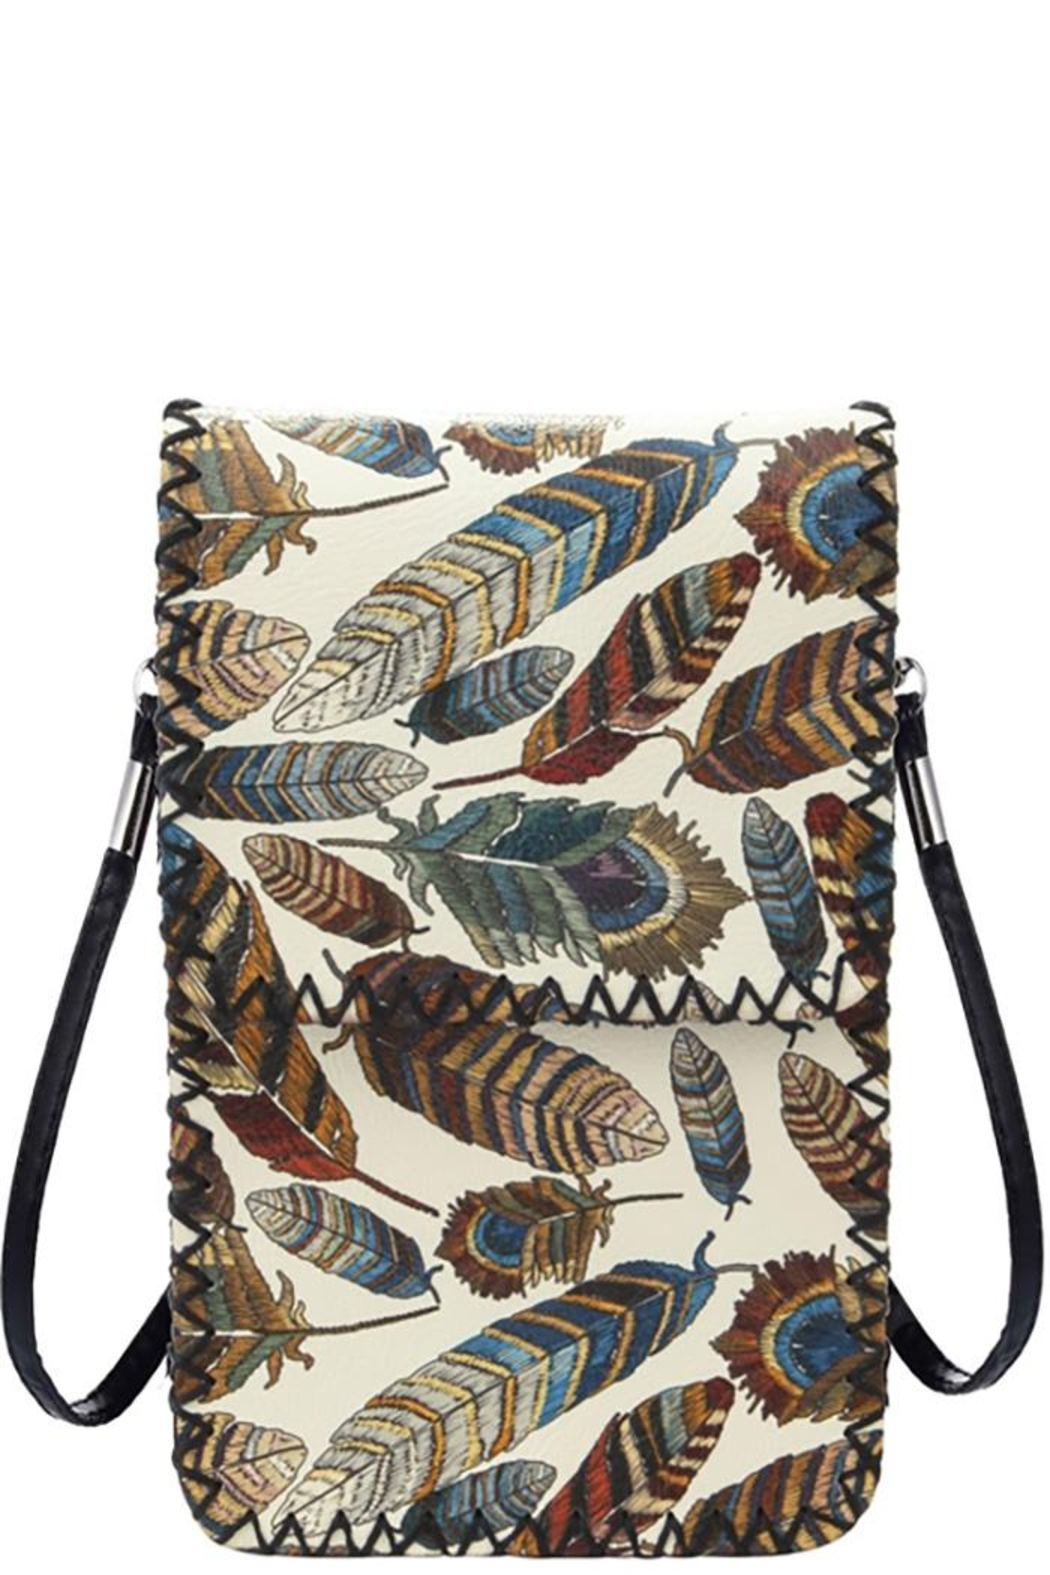 Something Special Feathers Detail Crossbody Bag - Main Image